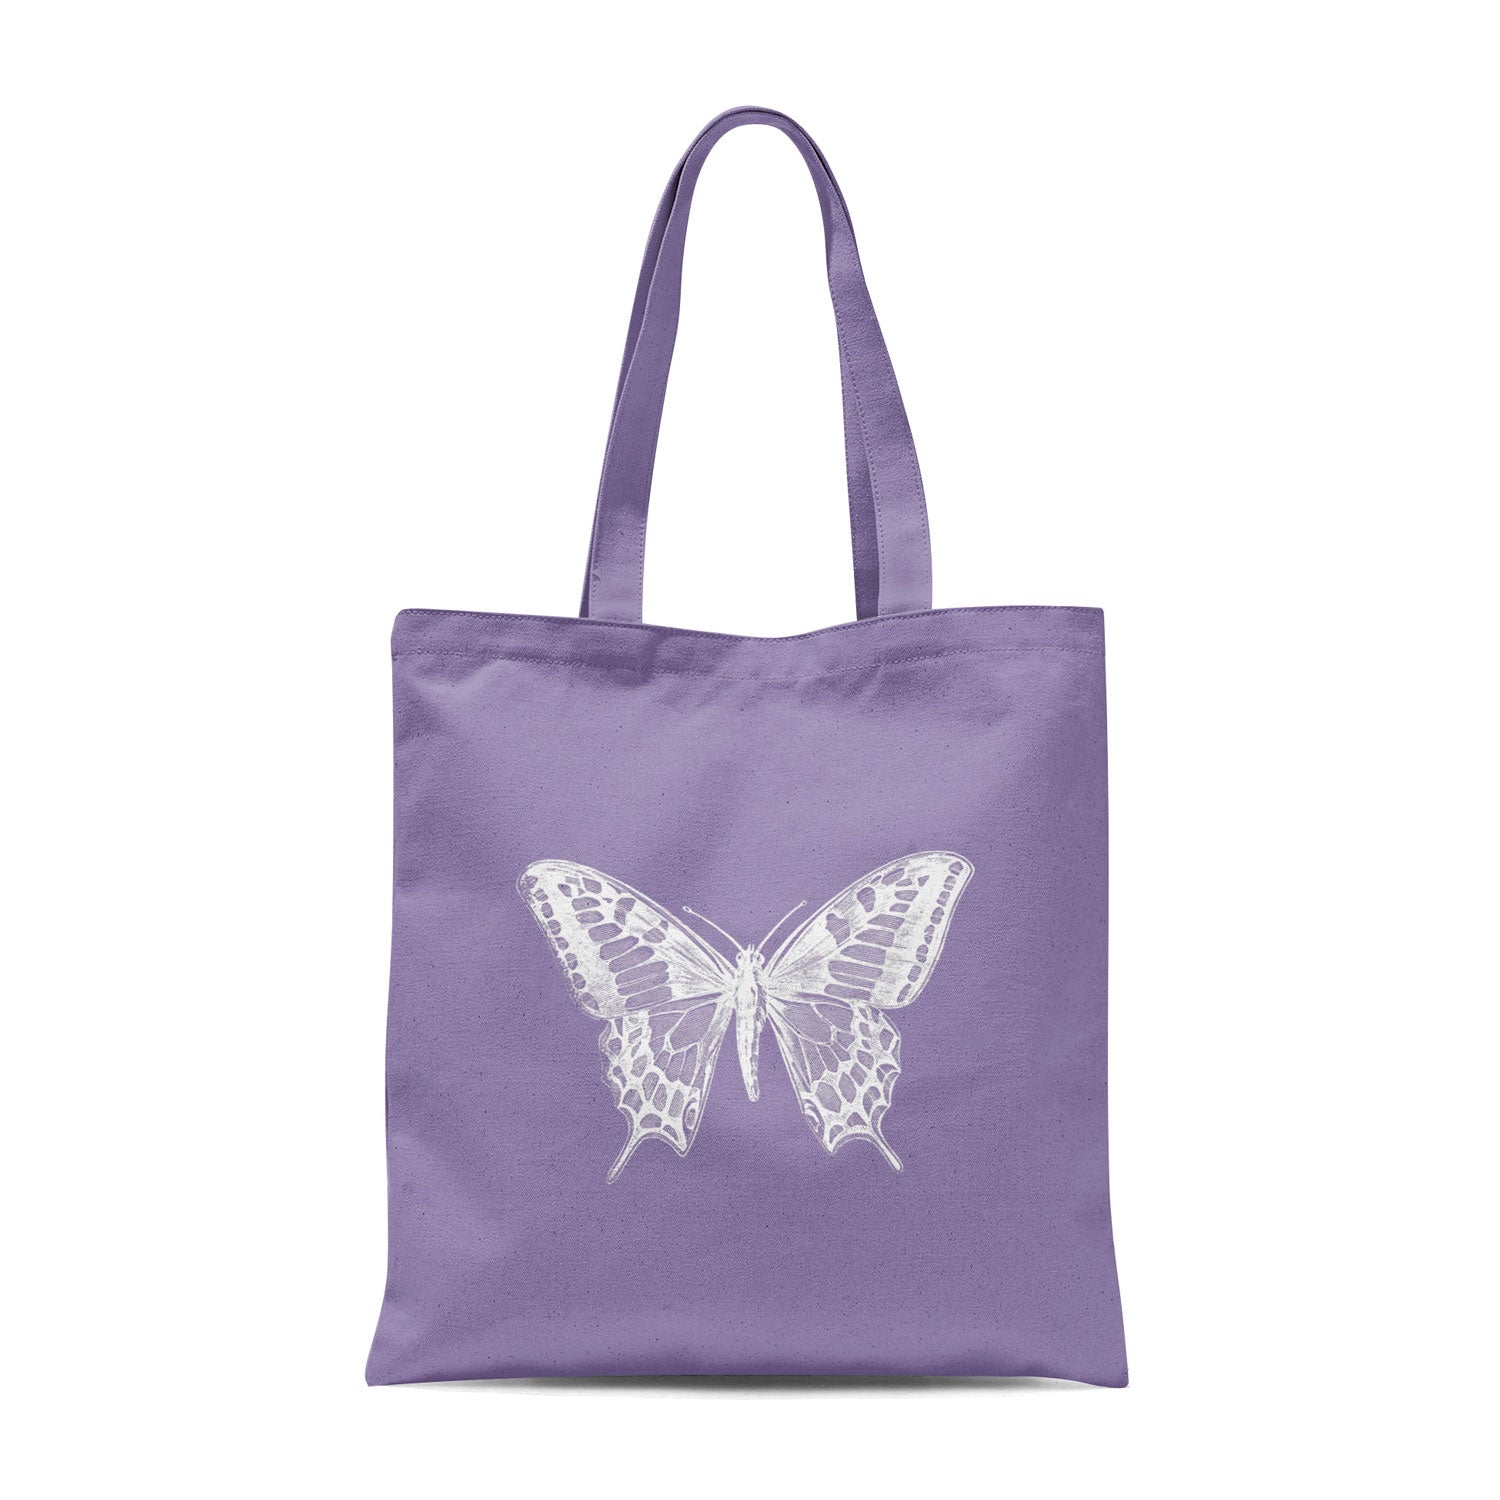 lavender-coloured tote bag with white butterfly design